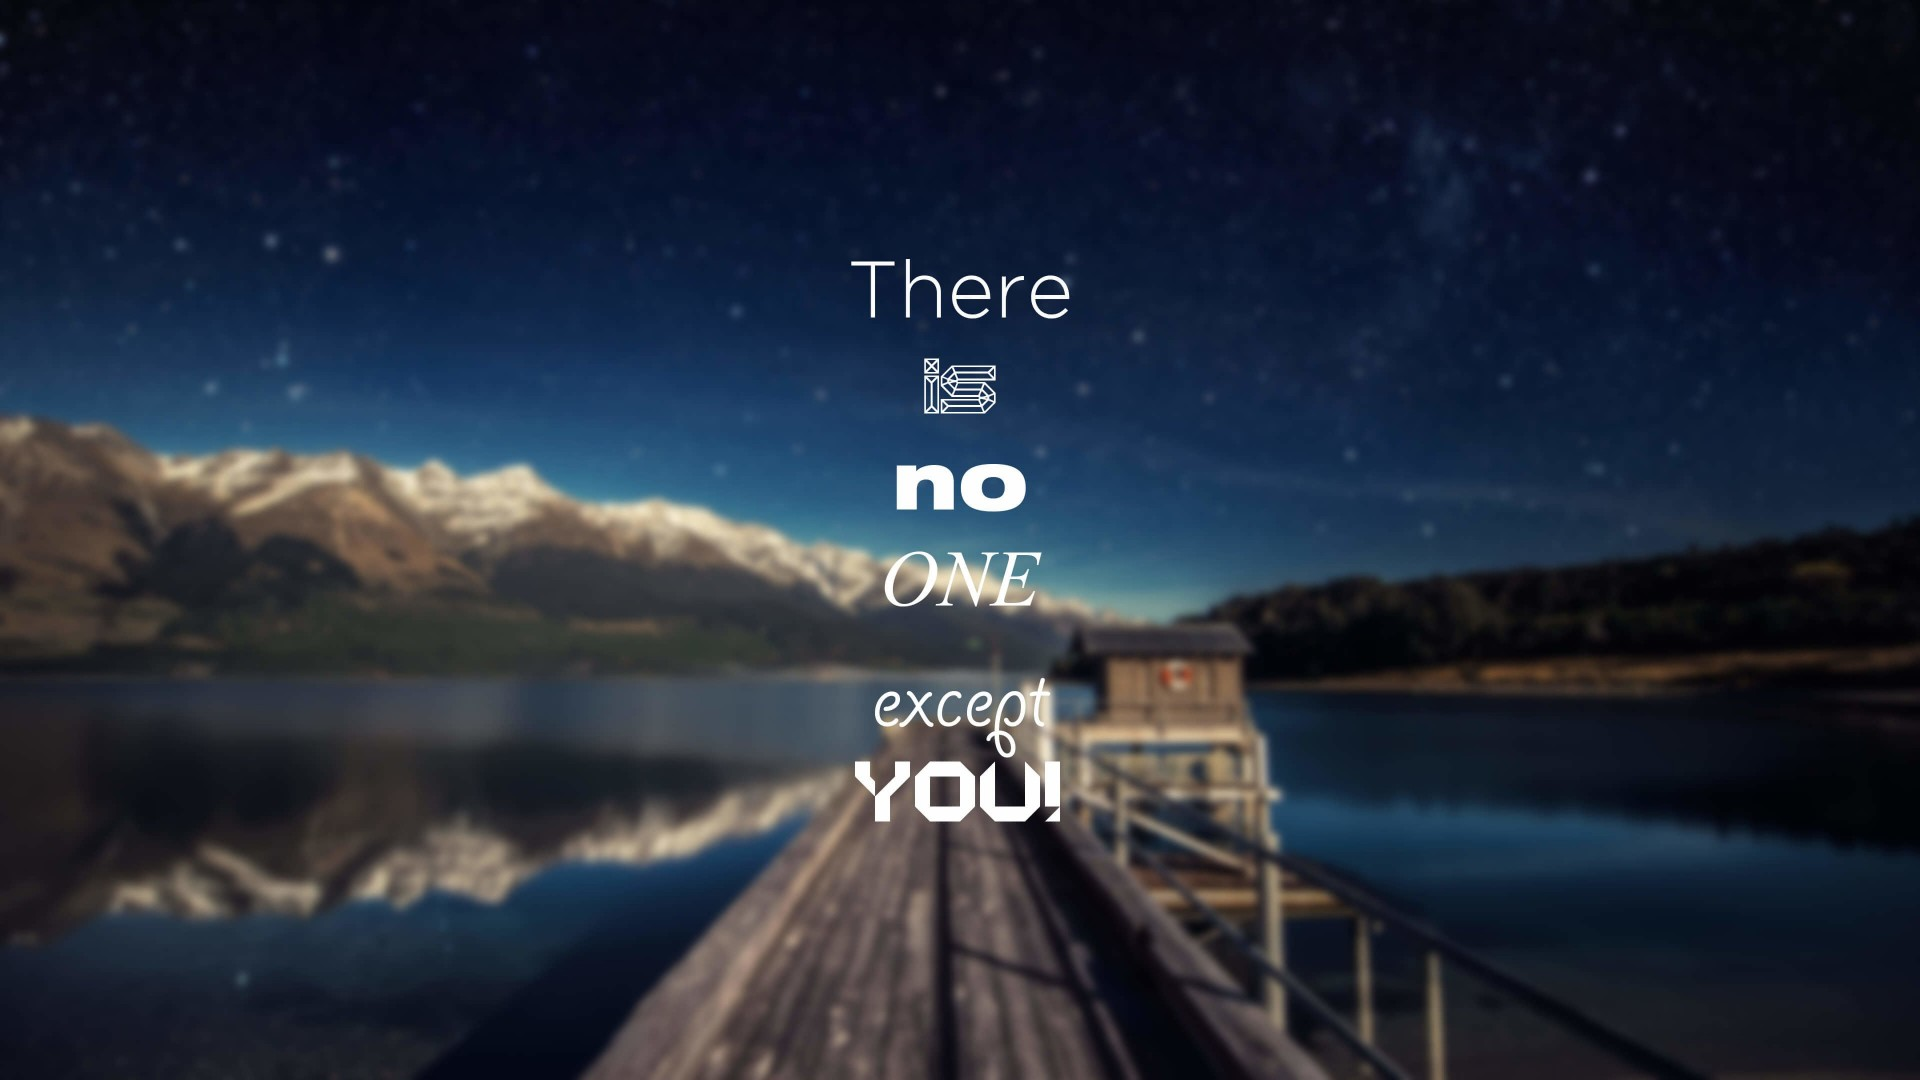 There Is No One Except You Wallpaper for Desktop 1920x1080